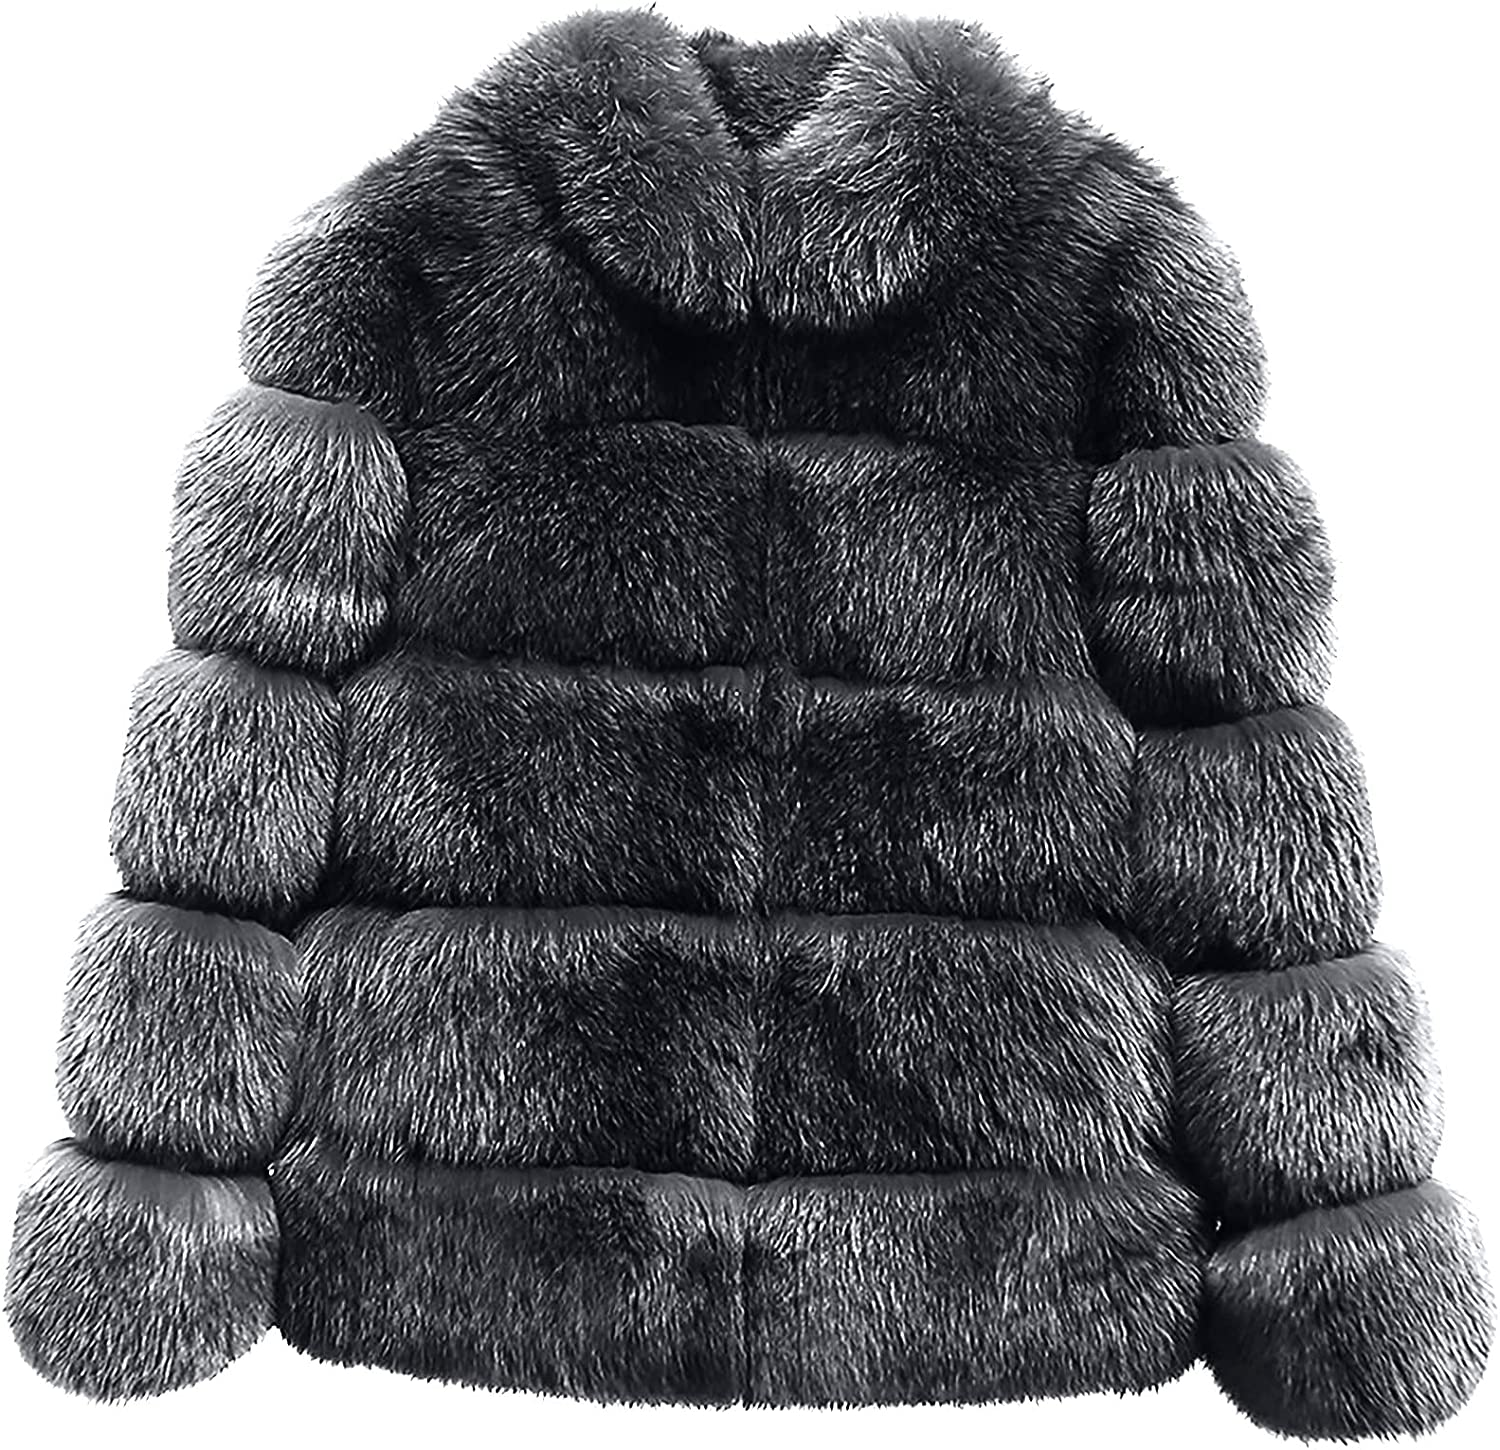 Women Winter Cardigan Plush Jacket Long-Sleeved Solid Color Warm Thick Outwear Loose Coat Lambswool Fashion